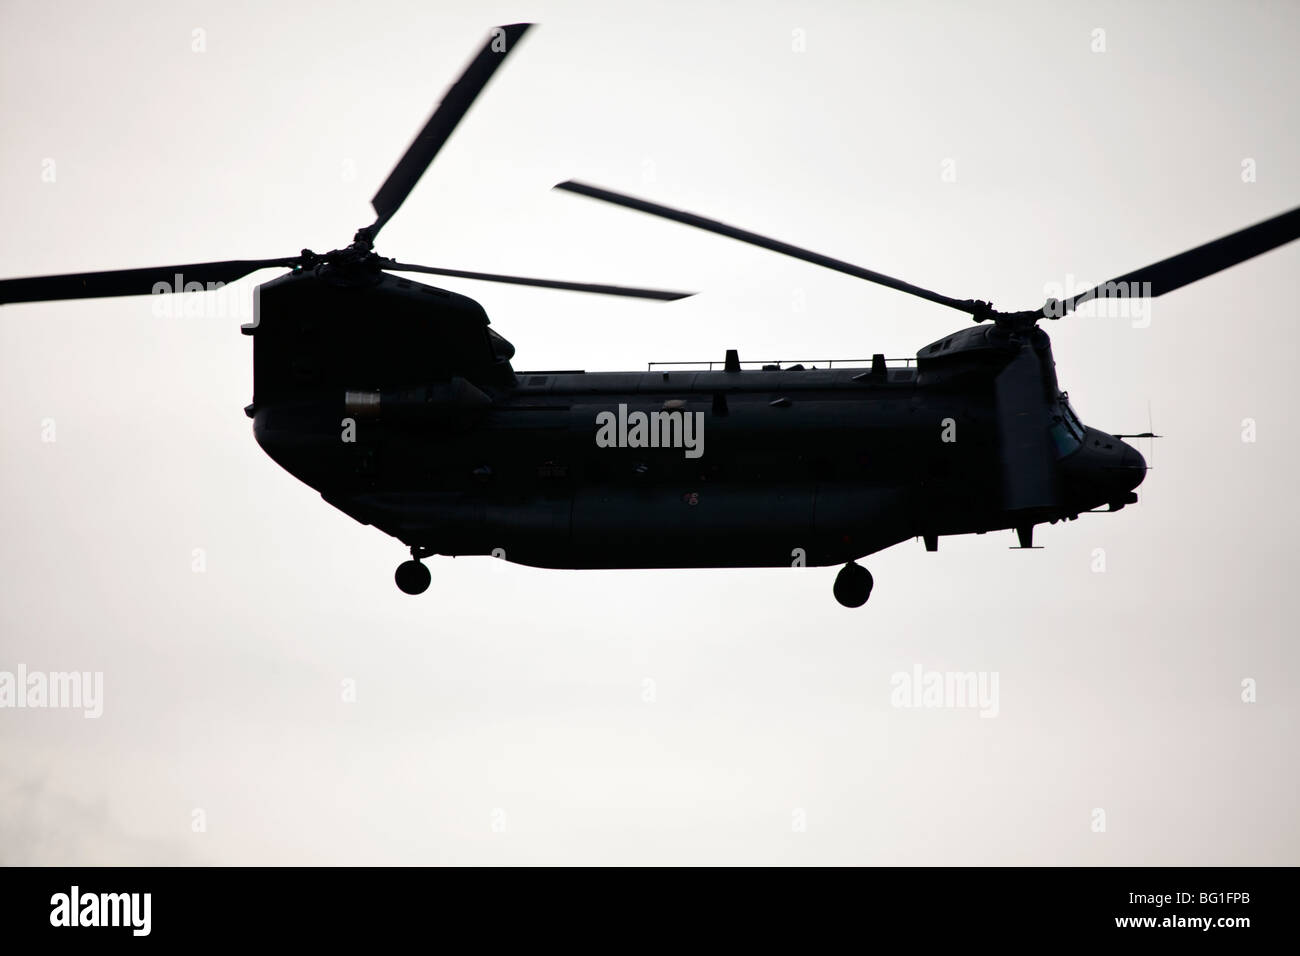 CH-47 Chinook helicopter in flight for the RAF at Donna Nook, Somercoates, lincolnshire, England - Stock Image